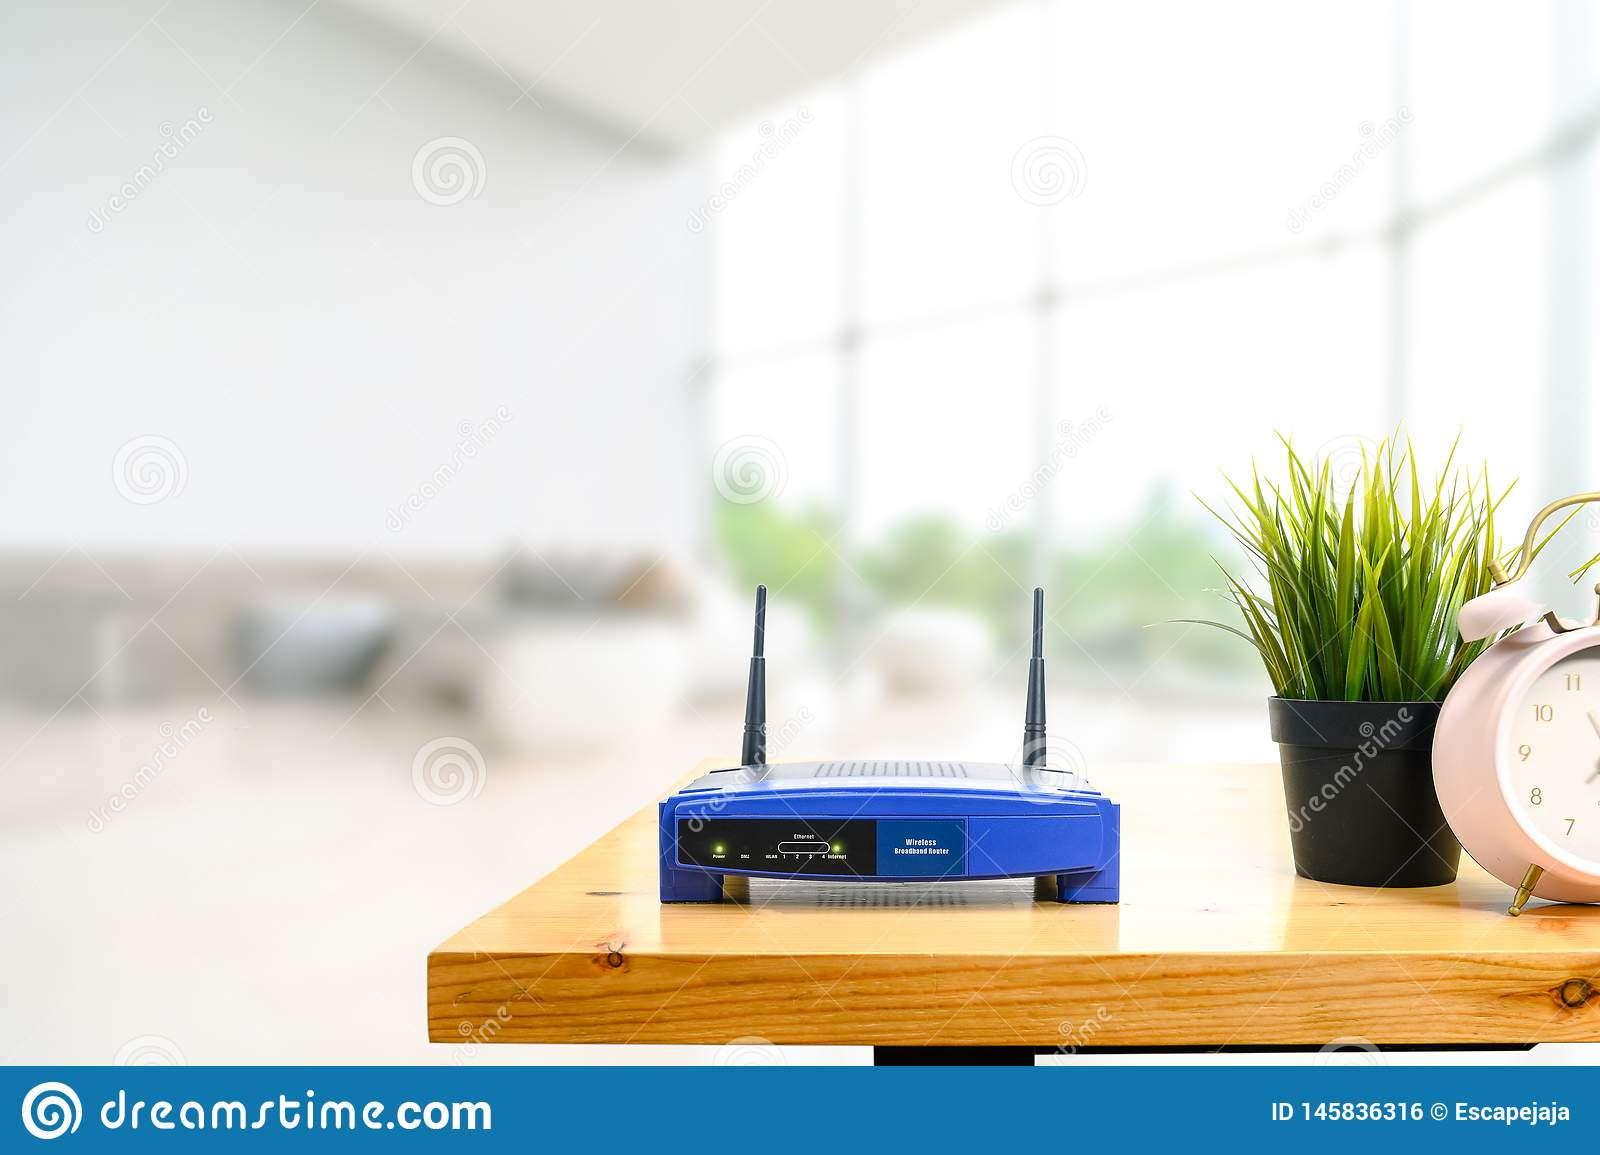 Closeup of a wireless router on living room at home with a window in the background